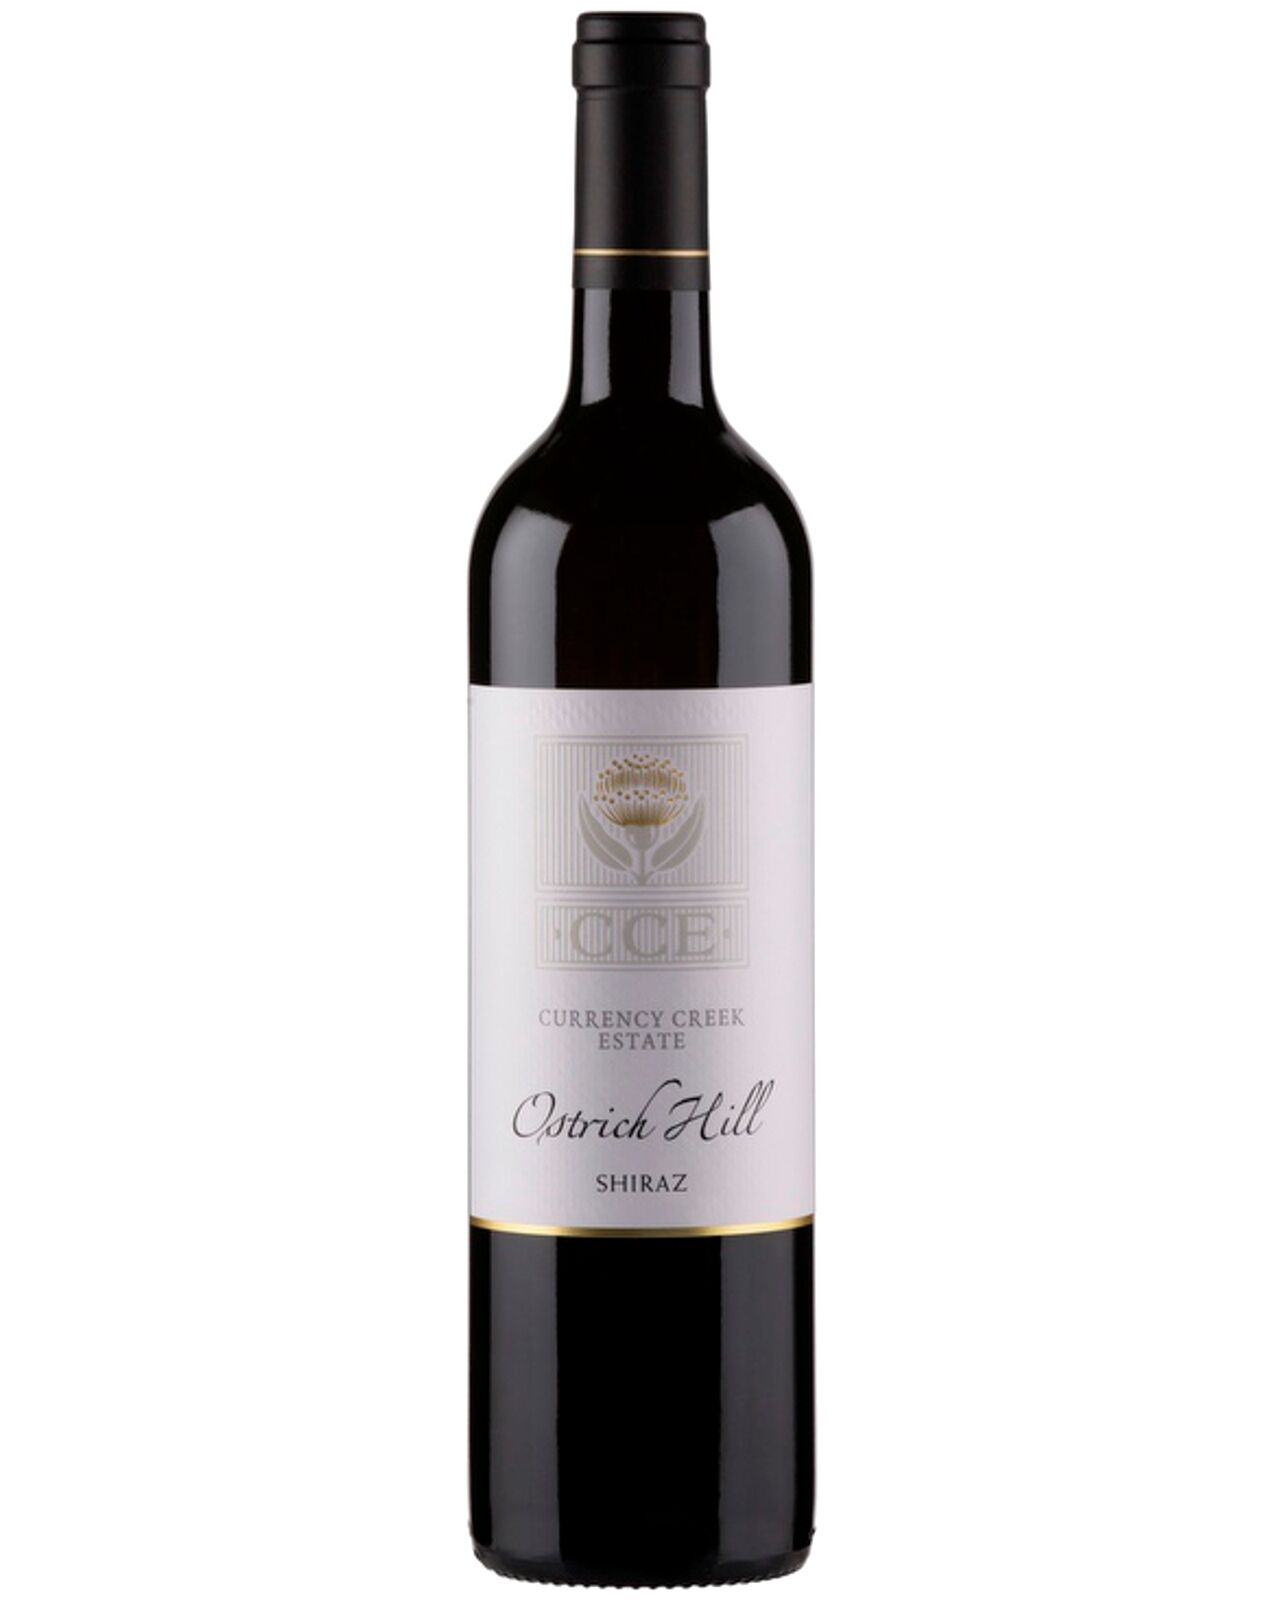 2014 Ostrich Hill Shiraz Currency Creek Estate case of 6 Dry Red Wine 750mL